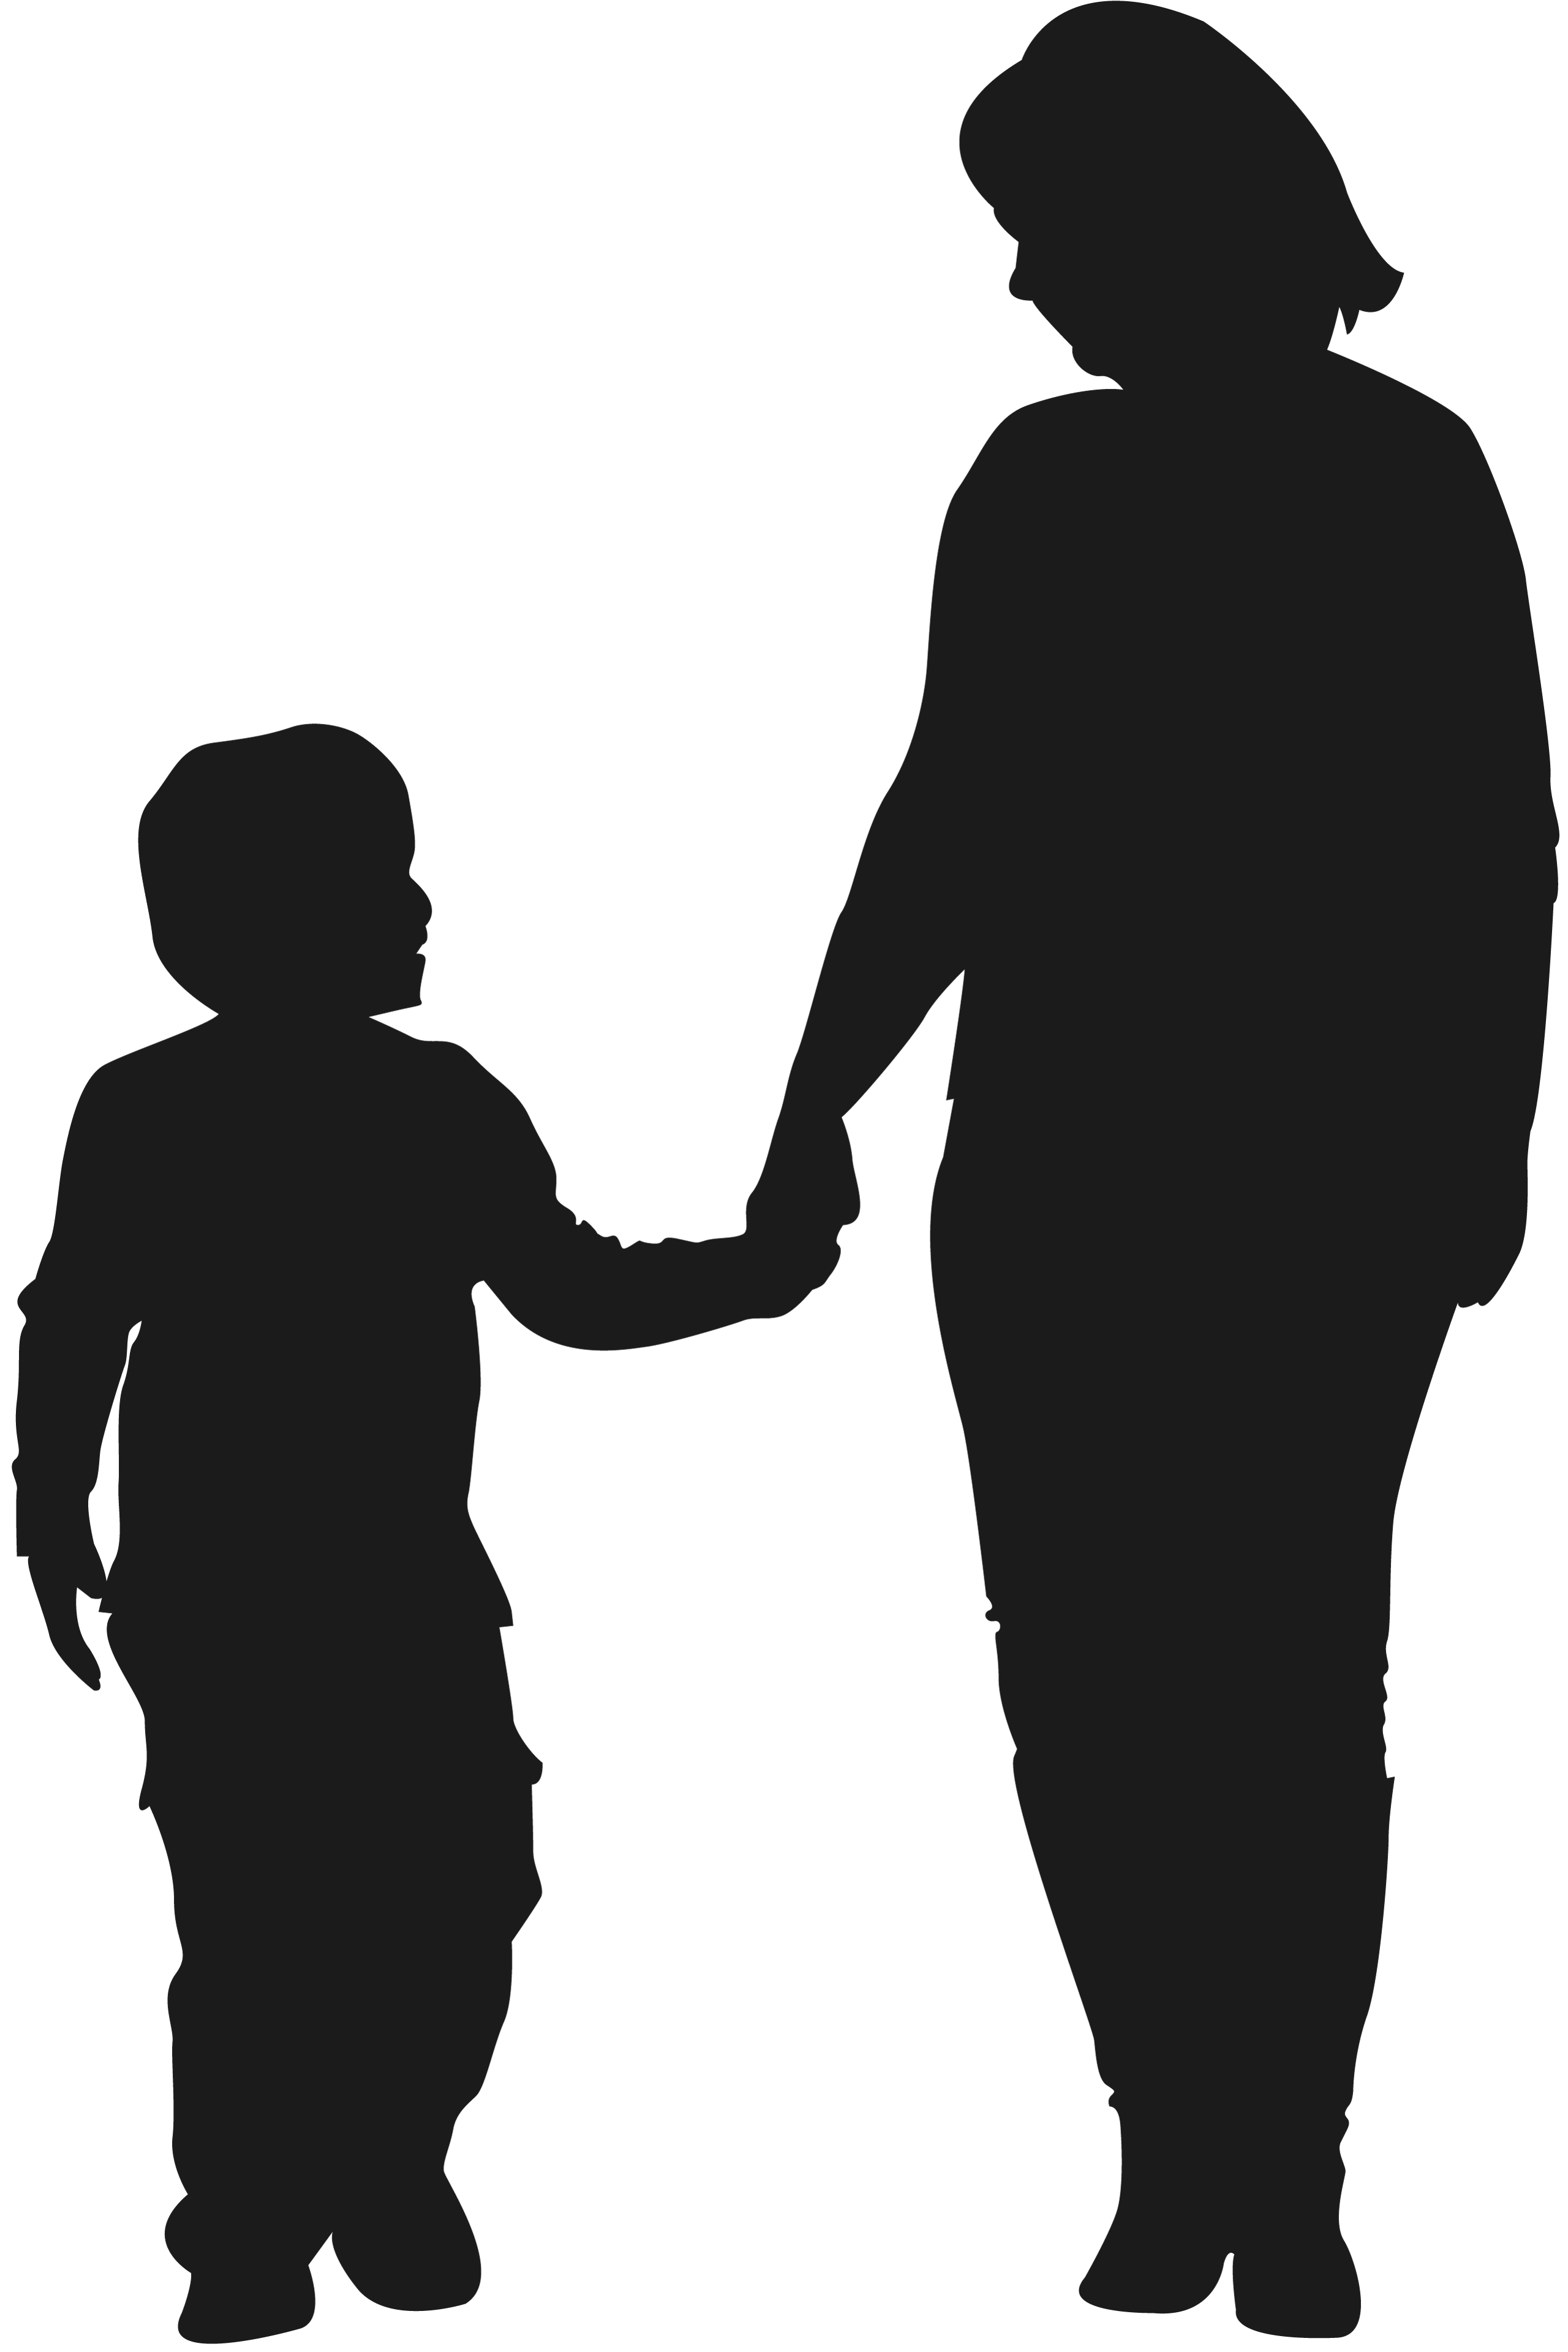 Standing Silhouette Human Mother Behavior Child PNG Image